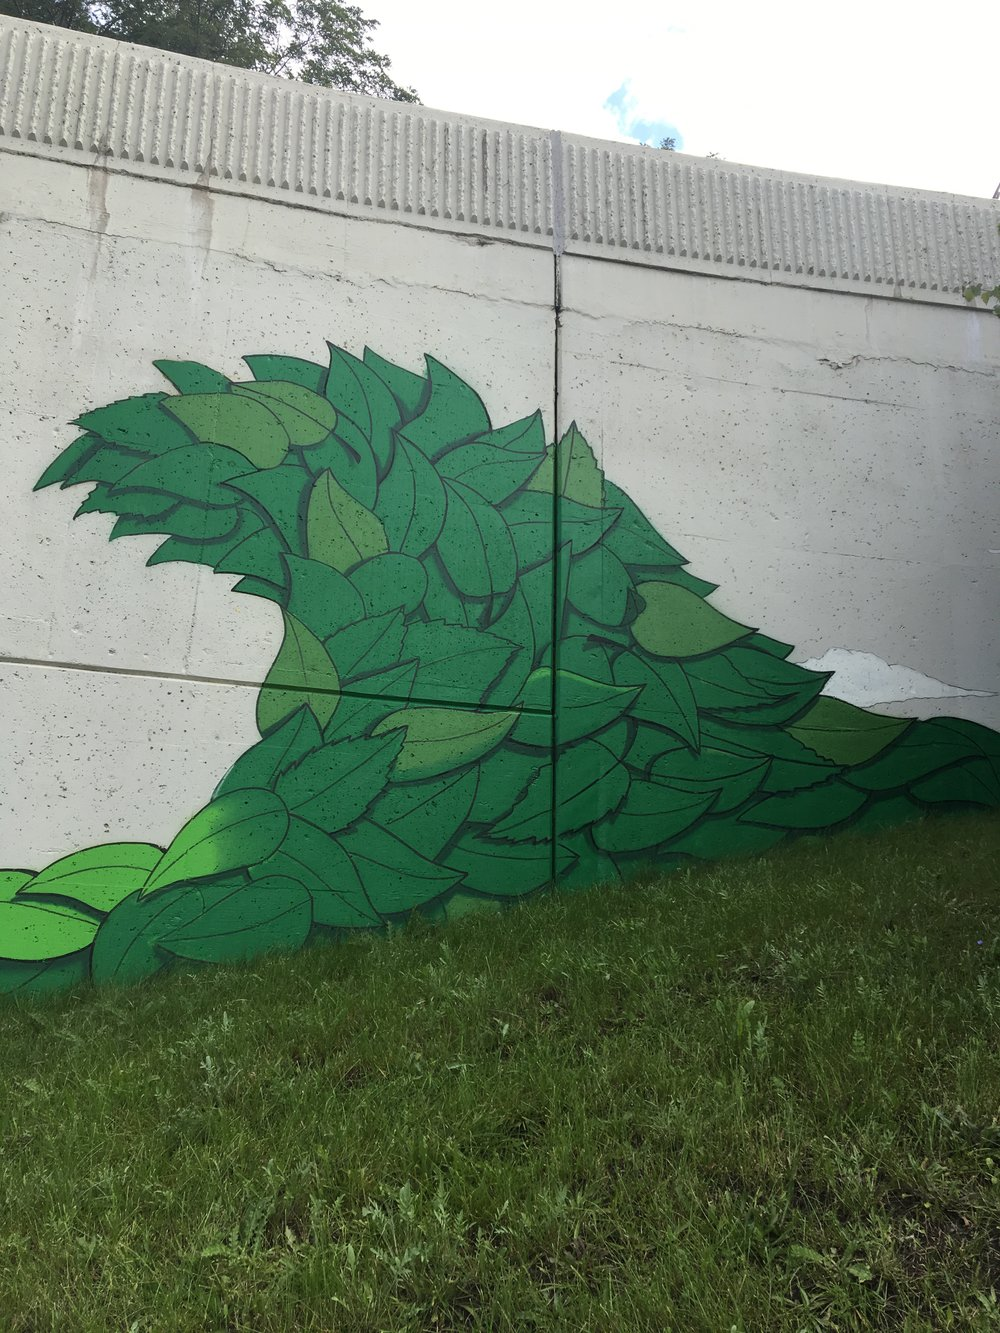 Green leaf detail of retaining wall mural